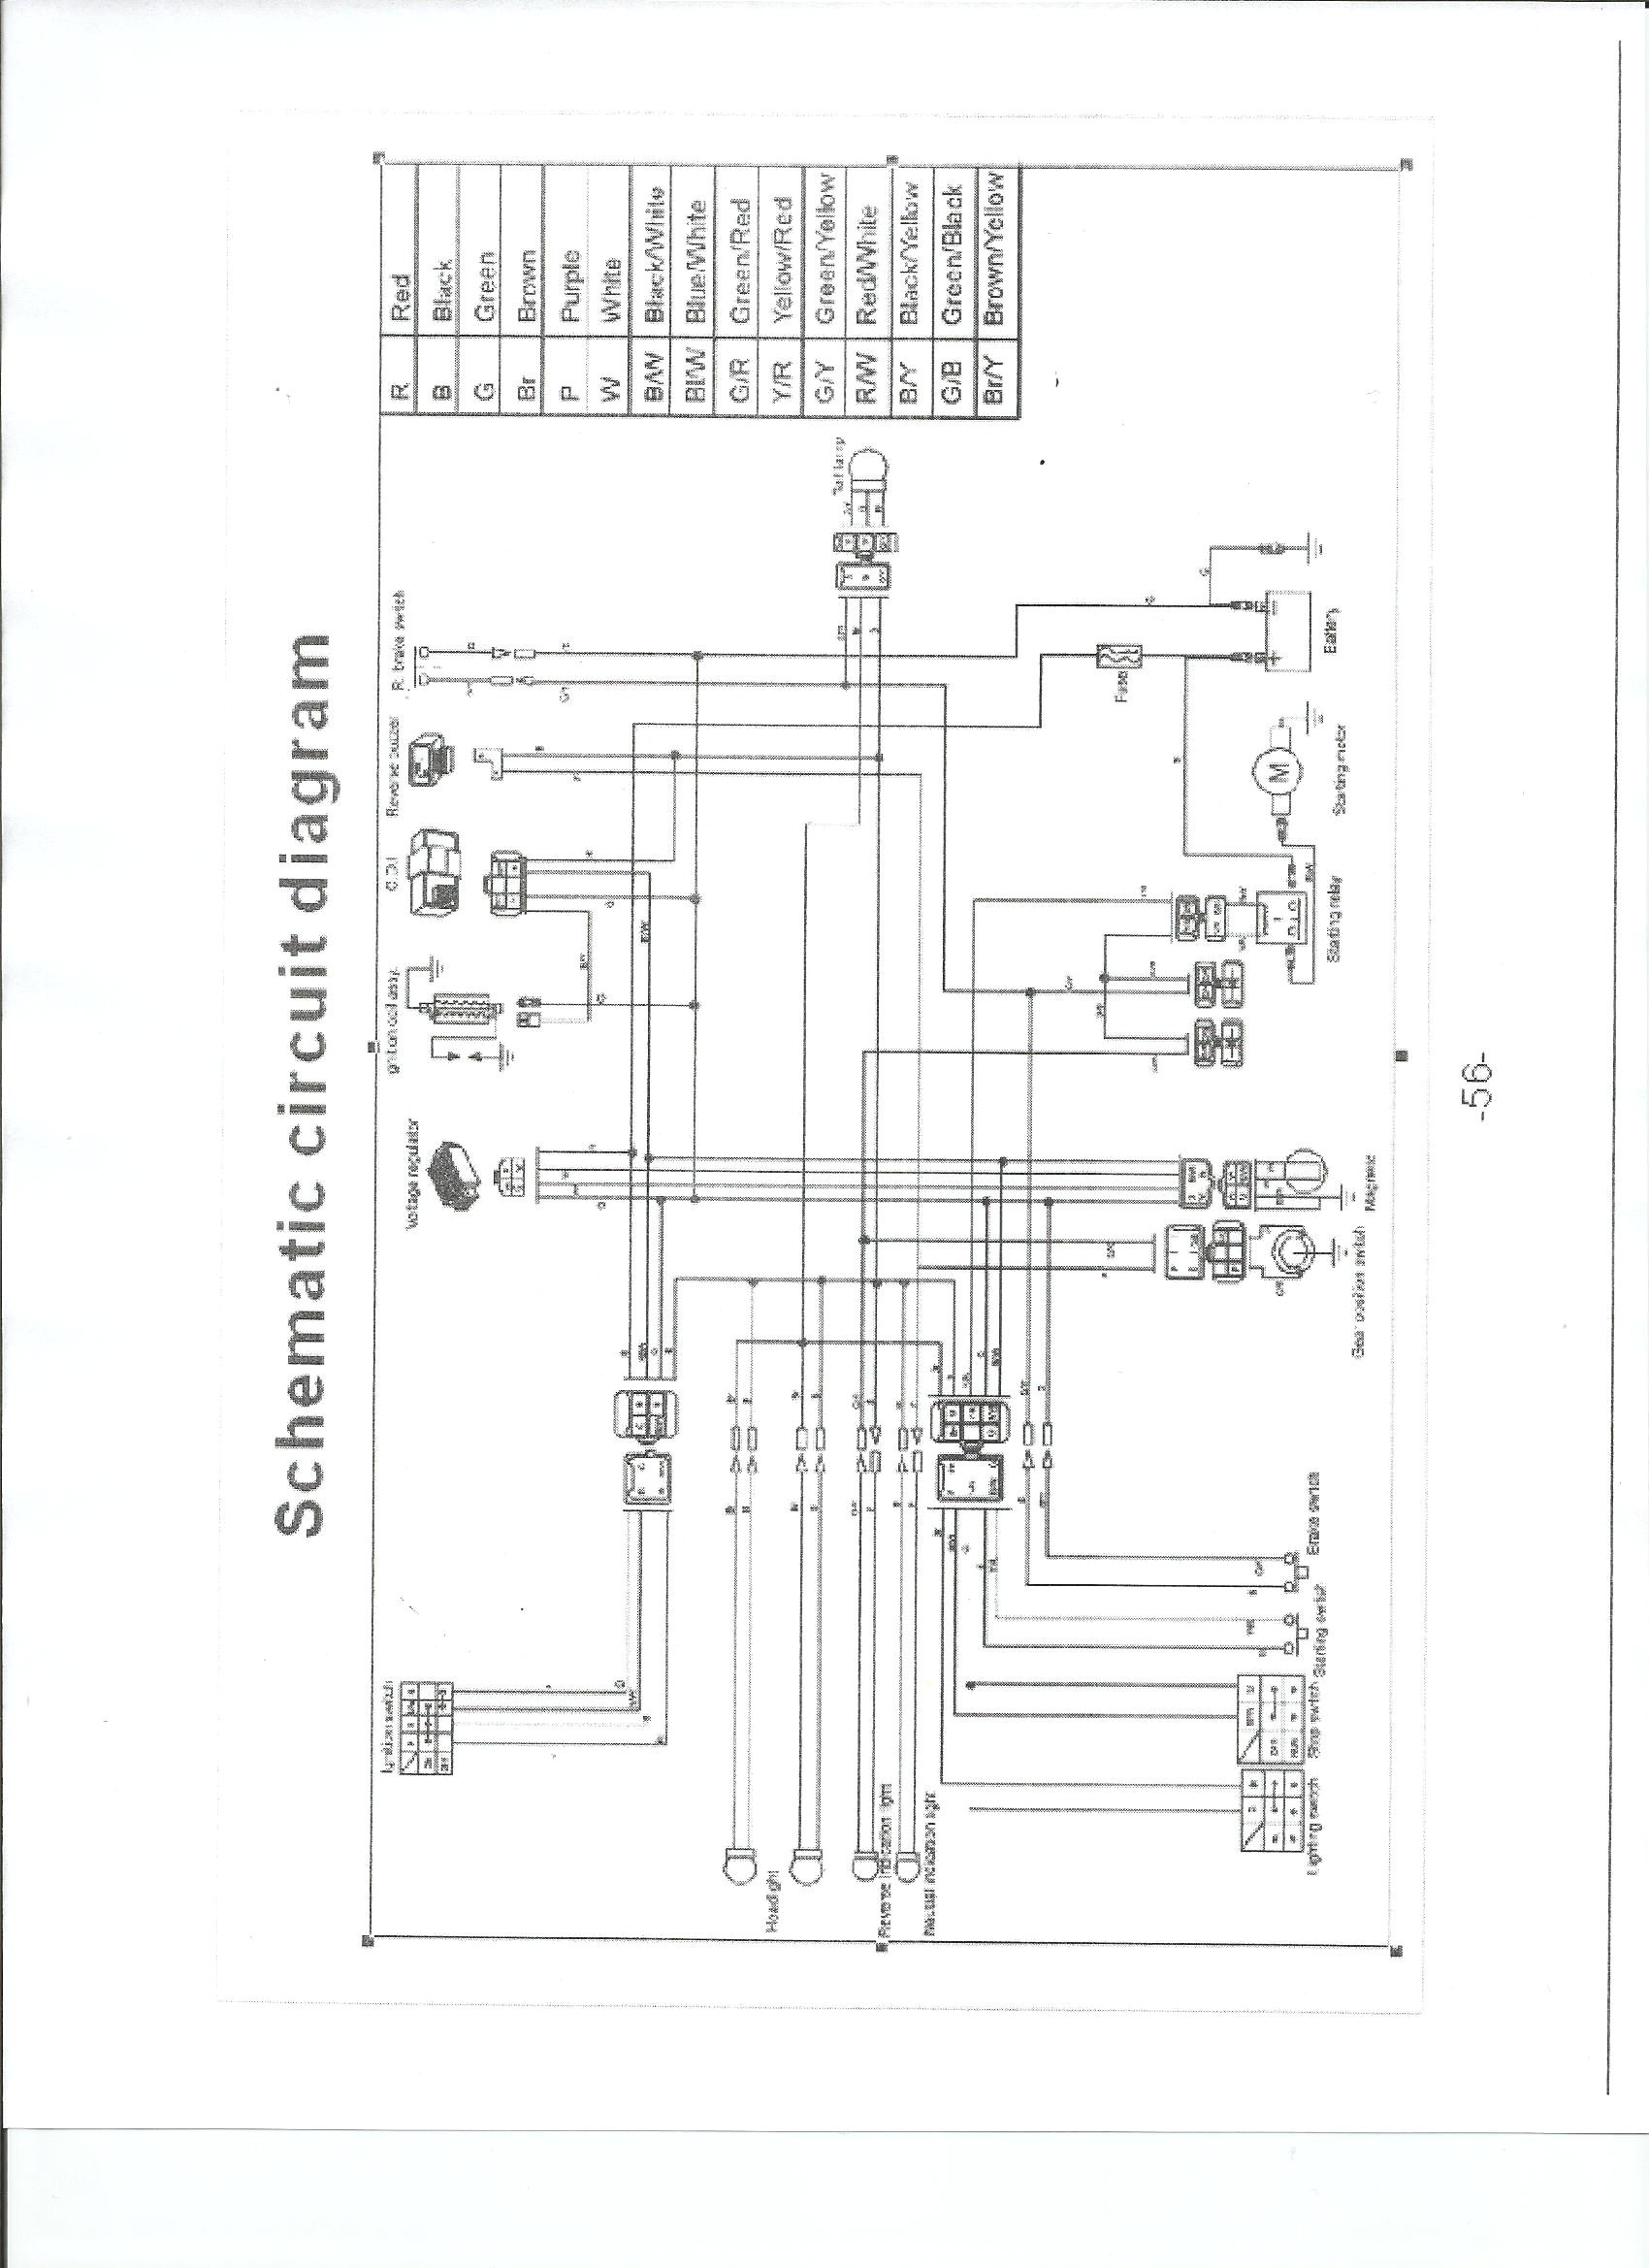 150cc Scooter Wiring Diagram In Addition 2013 Tao Tao 50cc Scooter Chinese  ATV Sensor Chinese Atv Stator Wiring